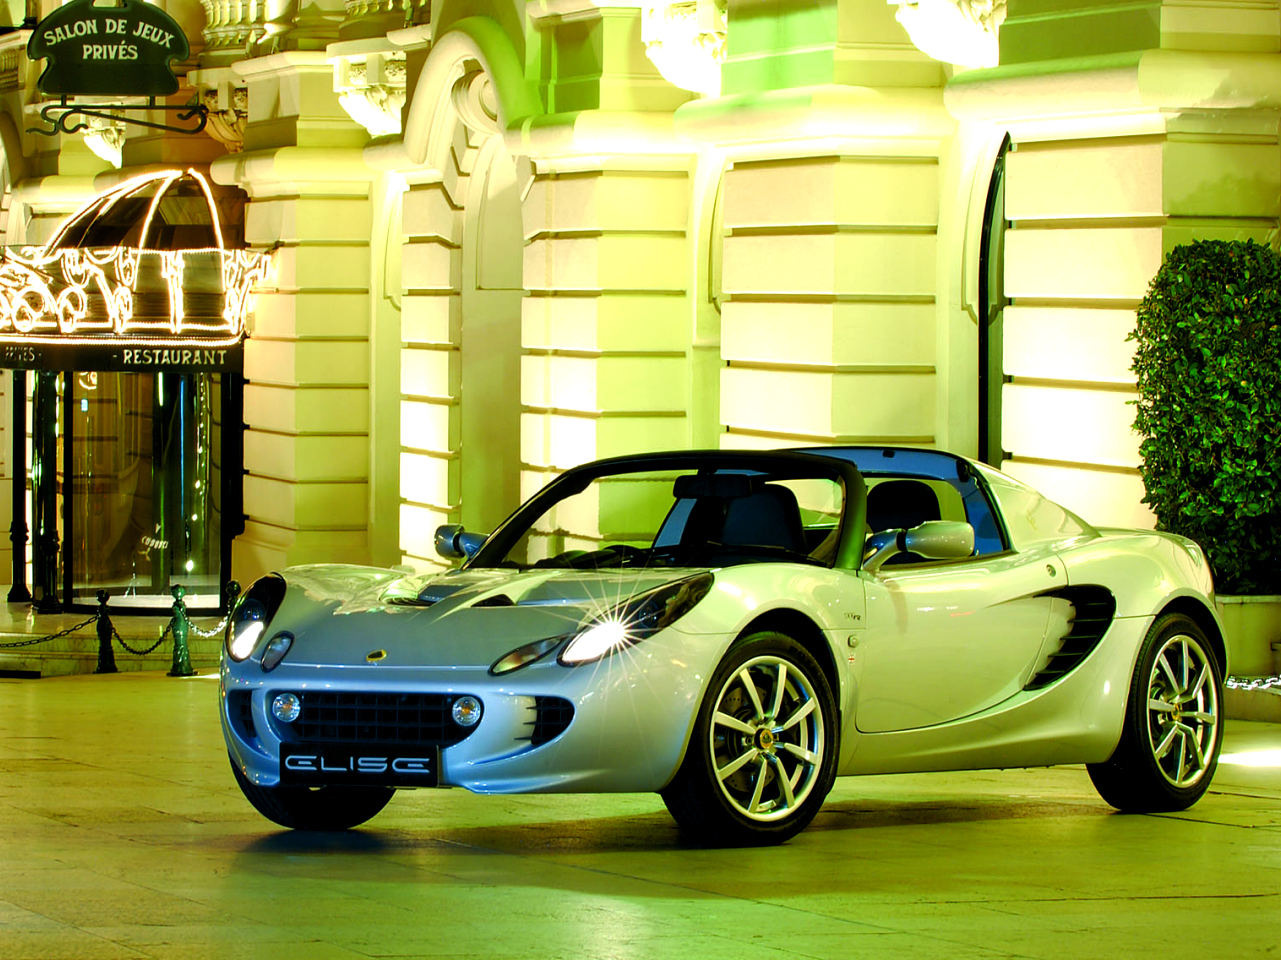 Lotus Elise in front of a resturant